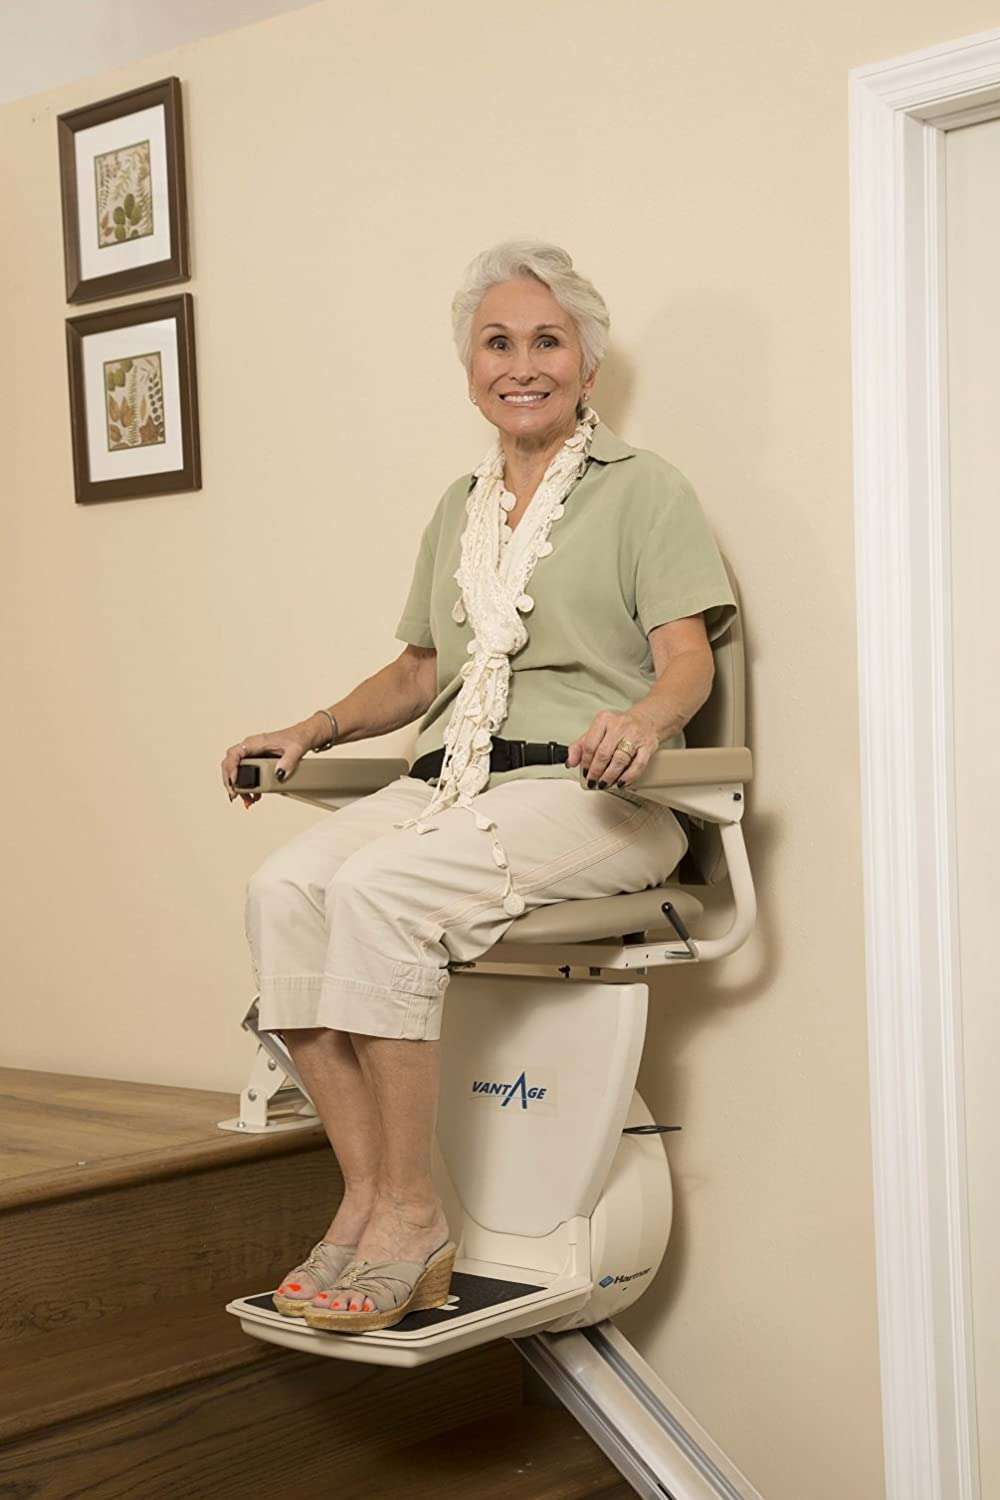 Chariot-Vantage Stair Lift